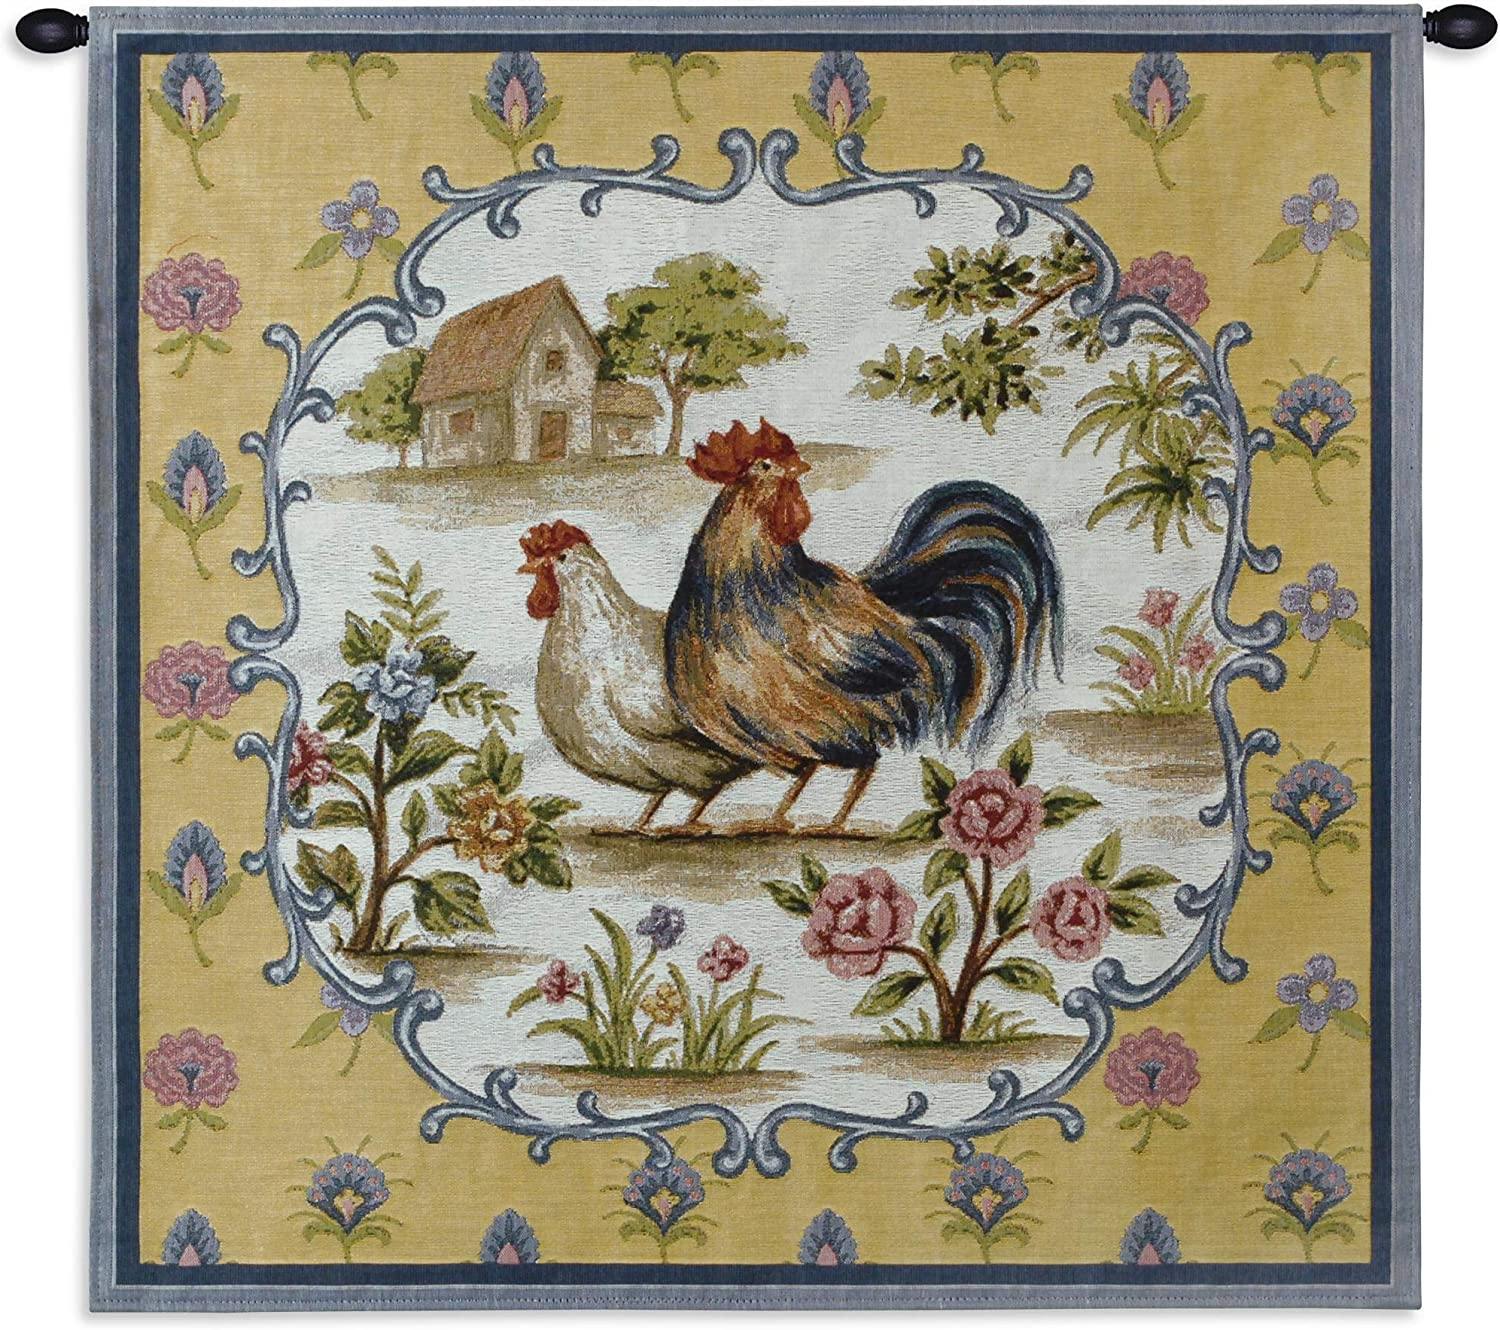 Roosters II Woven Tapestry Wall Art Hanging French Provincial Barnyard Hen and Rooster 100 Cotton USA Size 35×35